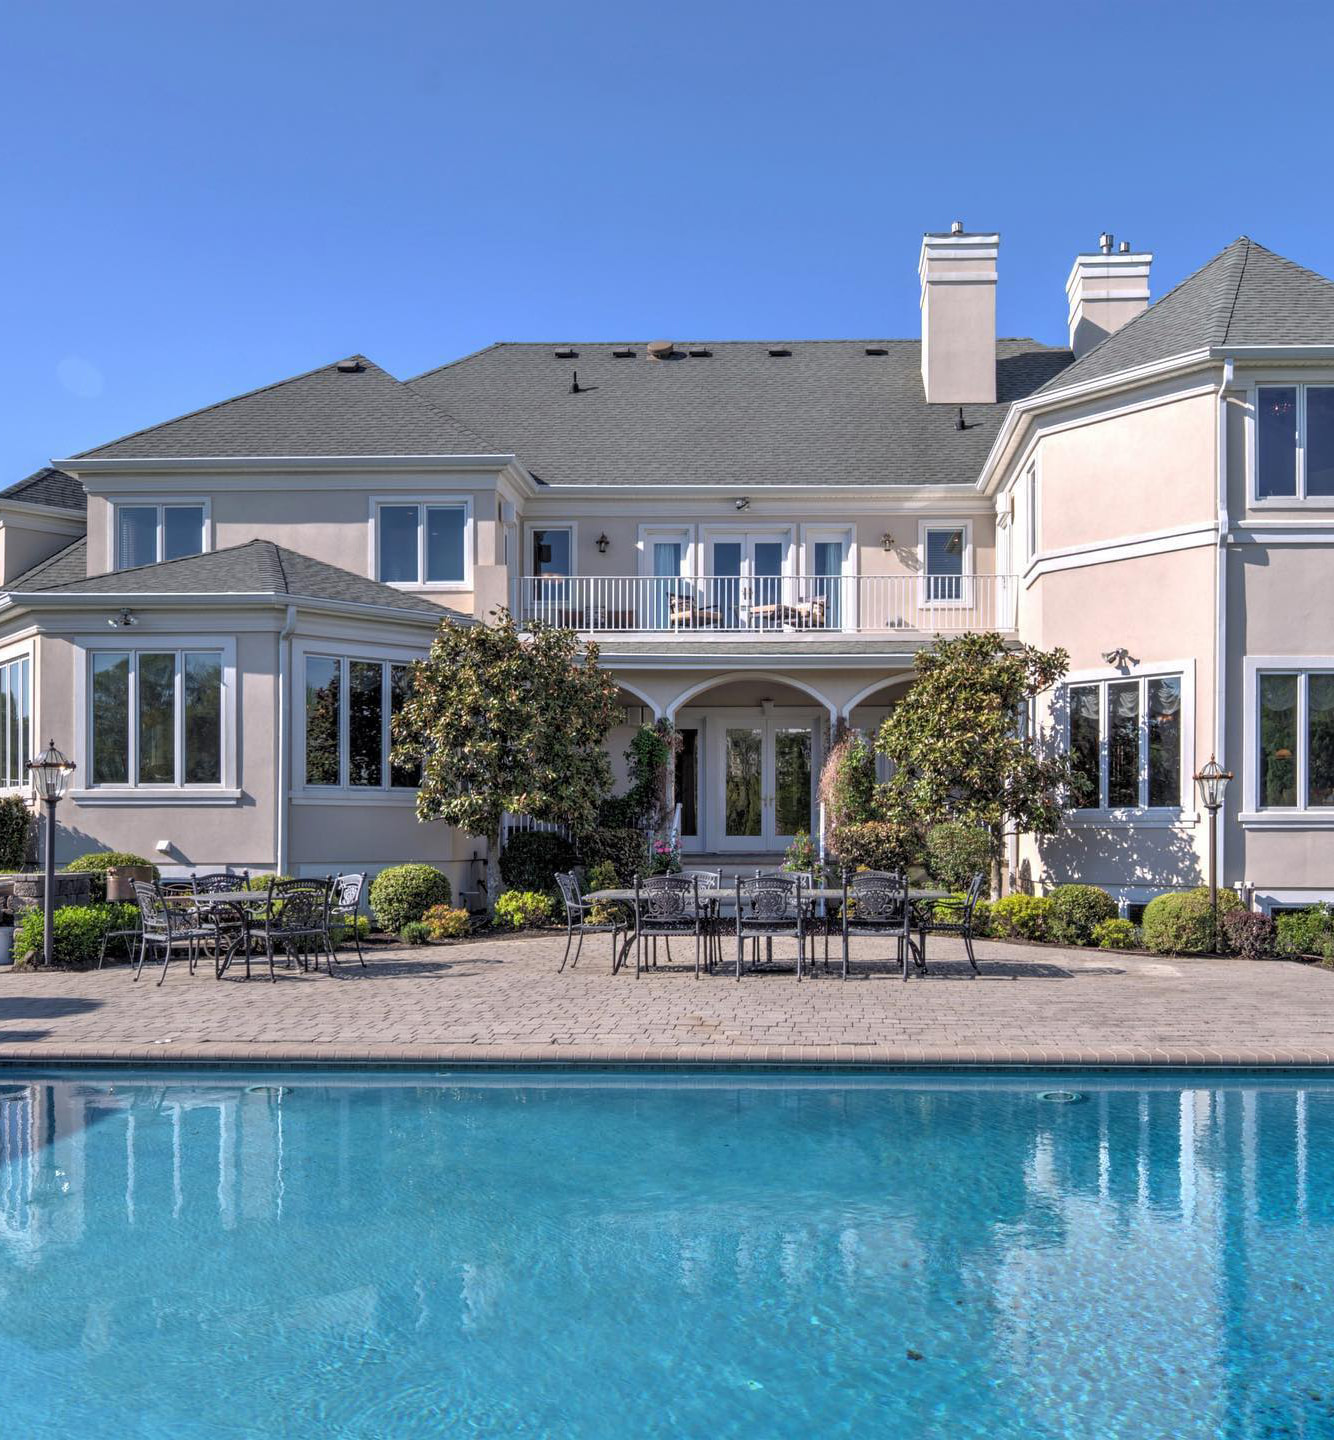 A large house with white casement windows, hinged patio door and an outdoor seating area.